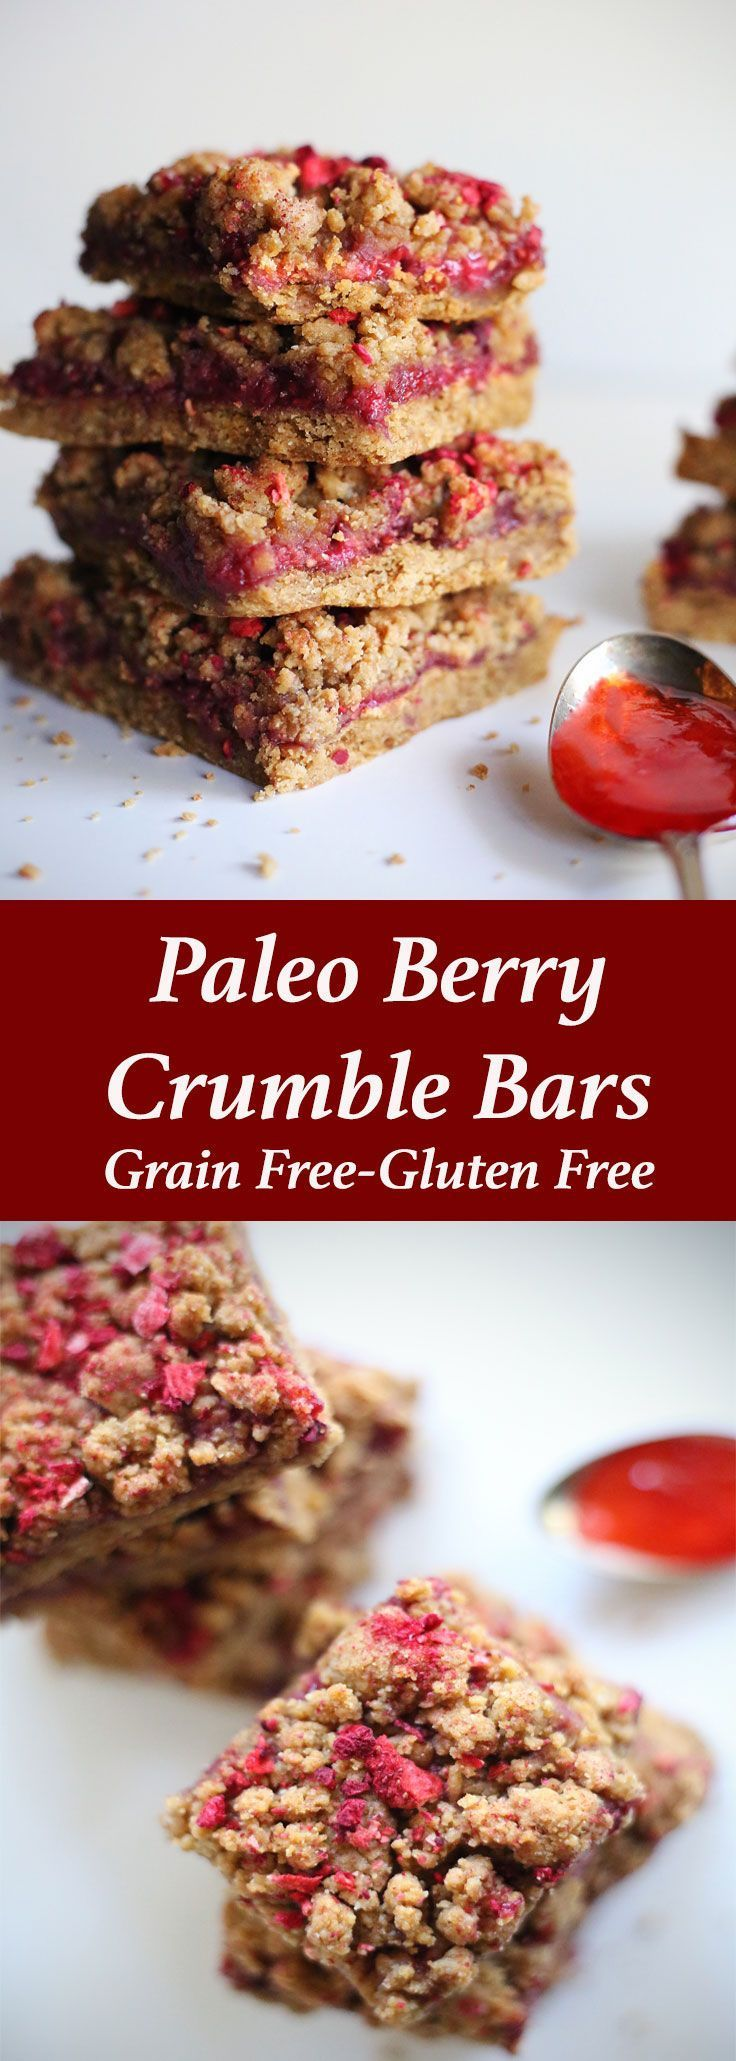 Paleo Berry Crumble Bars - The Paleo Paparazzi